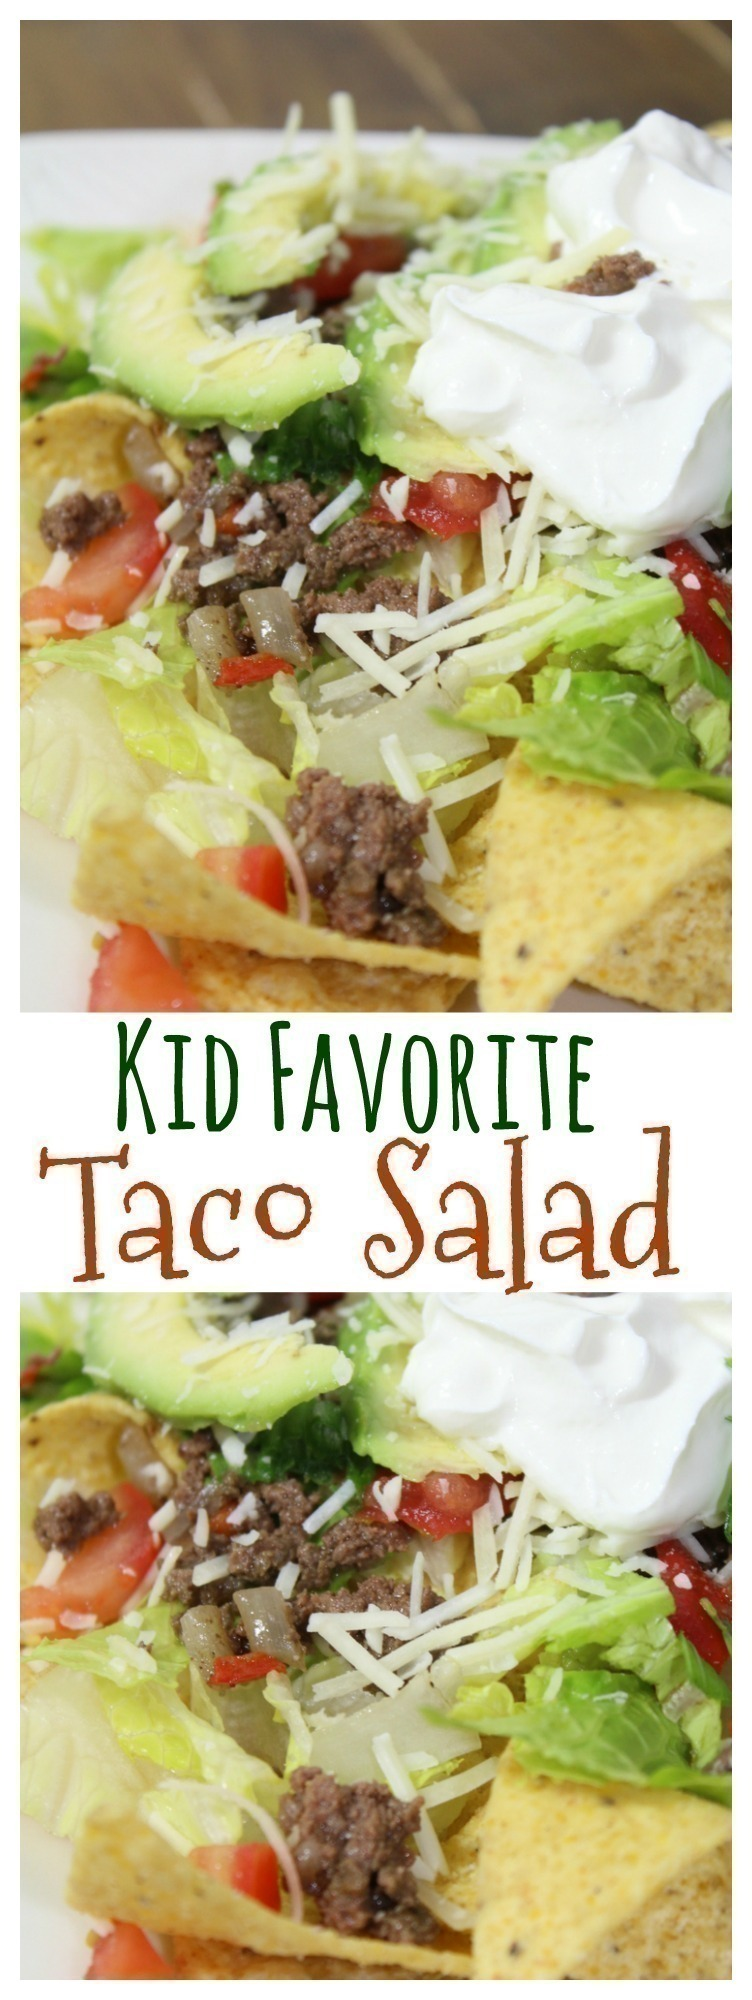 This incredibly easy taco salad is a FUN kids favorite ~ not to mention, a great way for your kids to get some veggies!